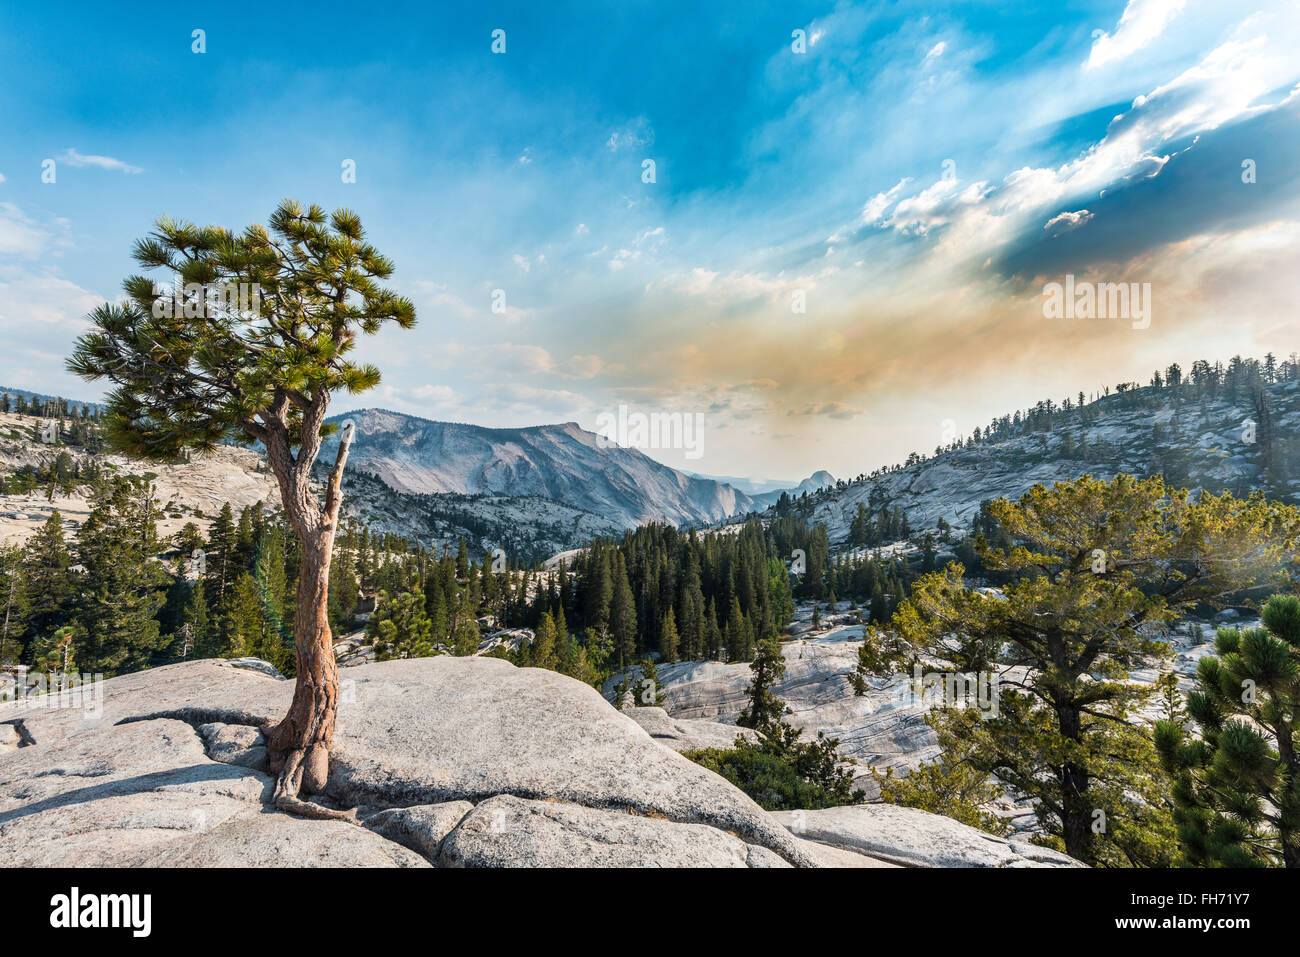 Pine Tree, sur un plateau rocheux à Olmsted Point, Yosemite National Park, California, USA Photo Stock